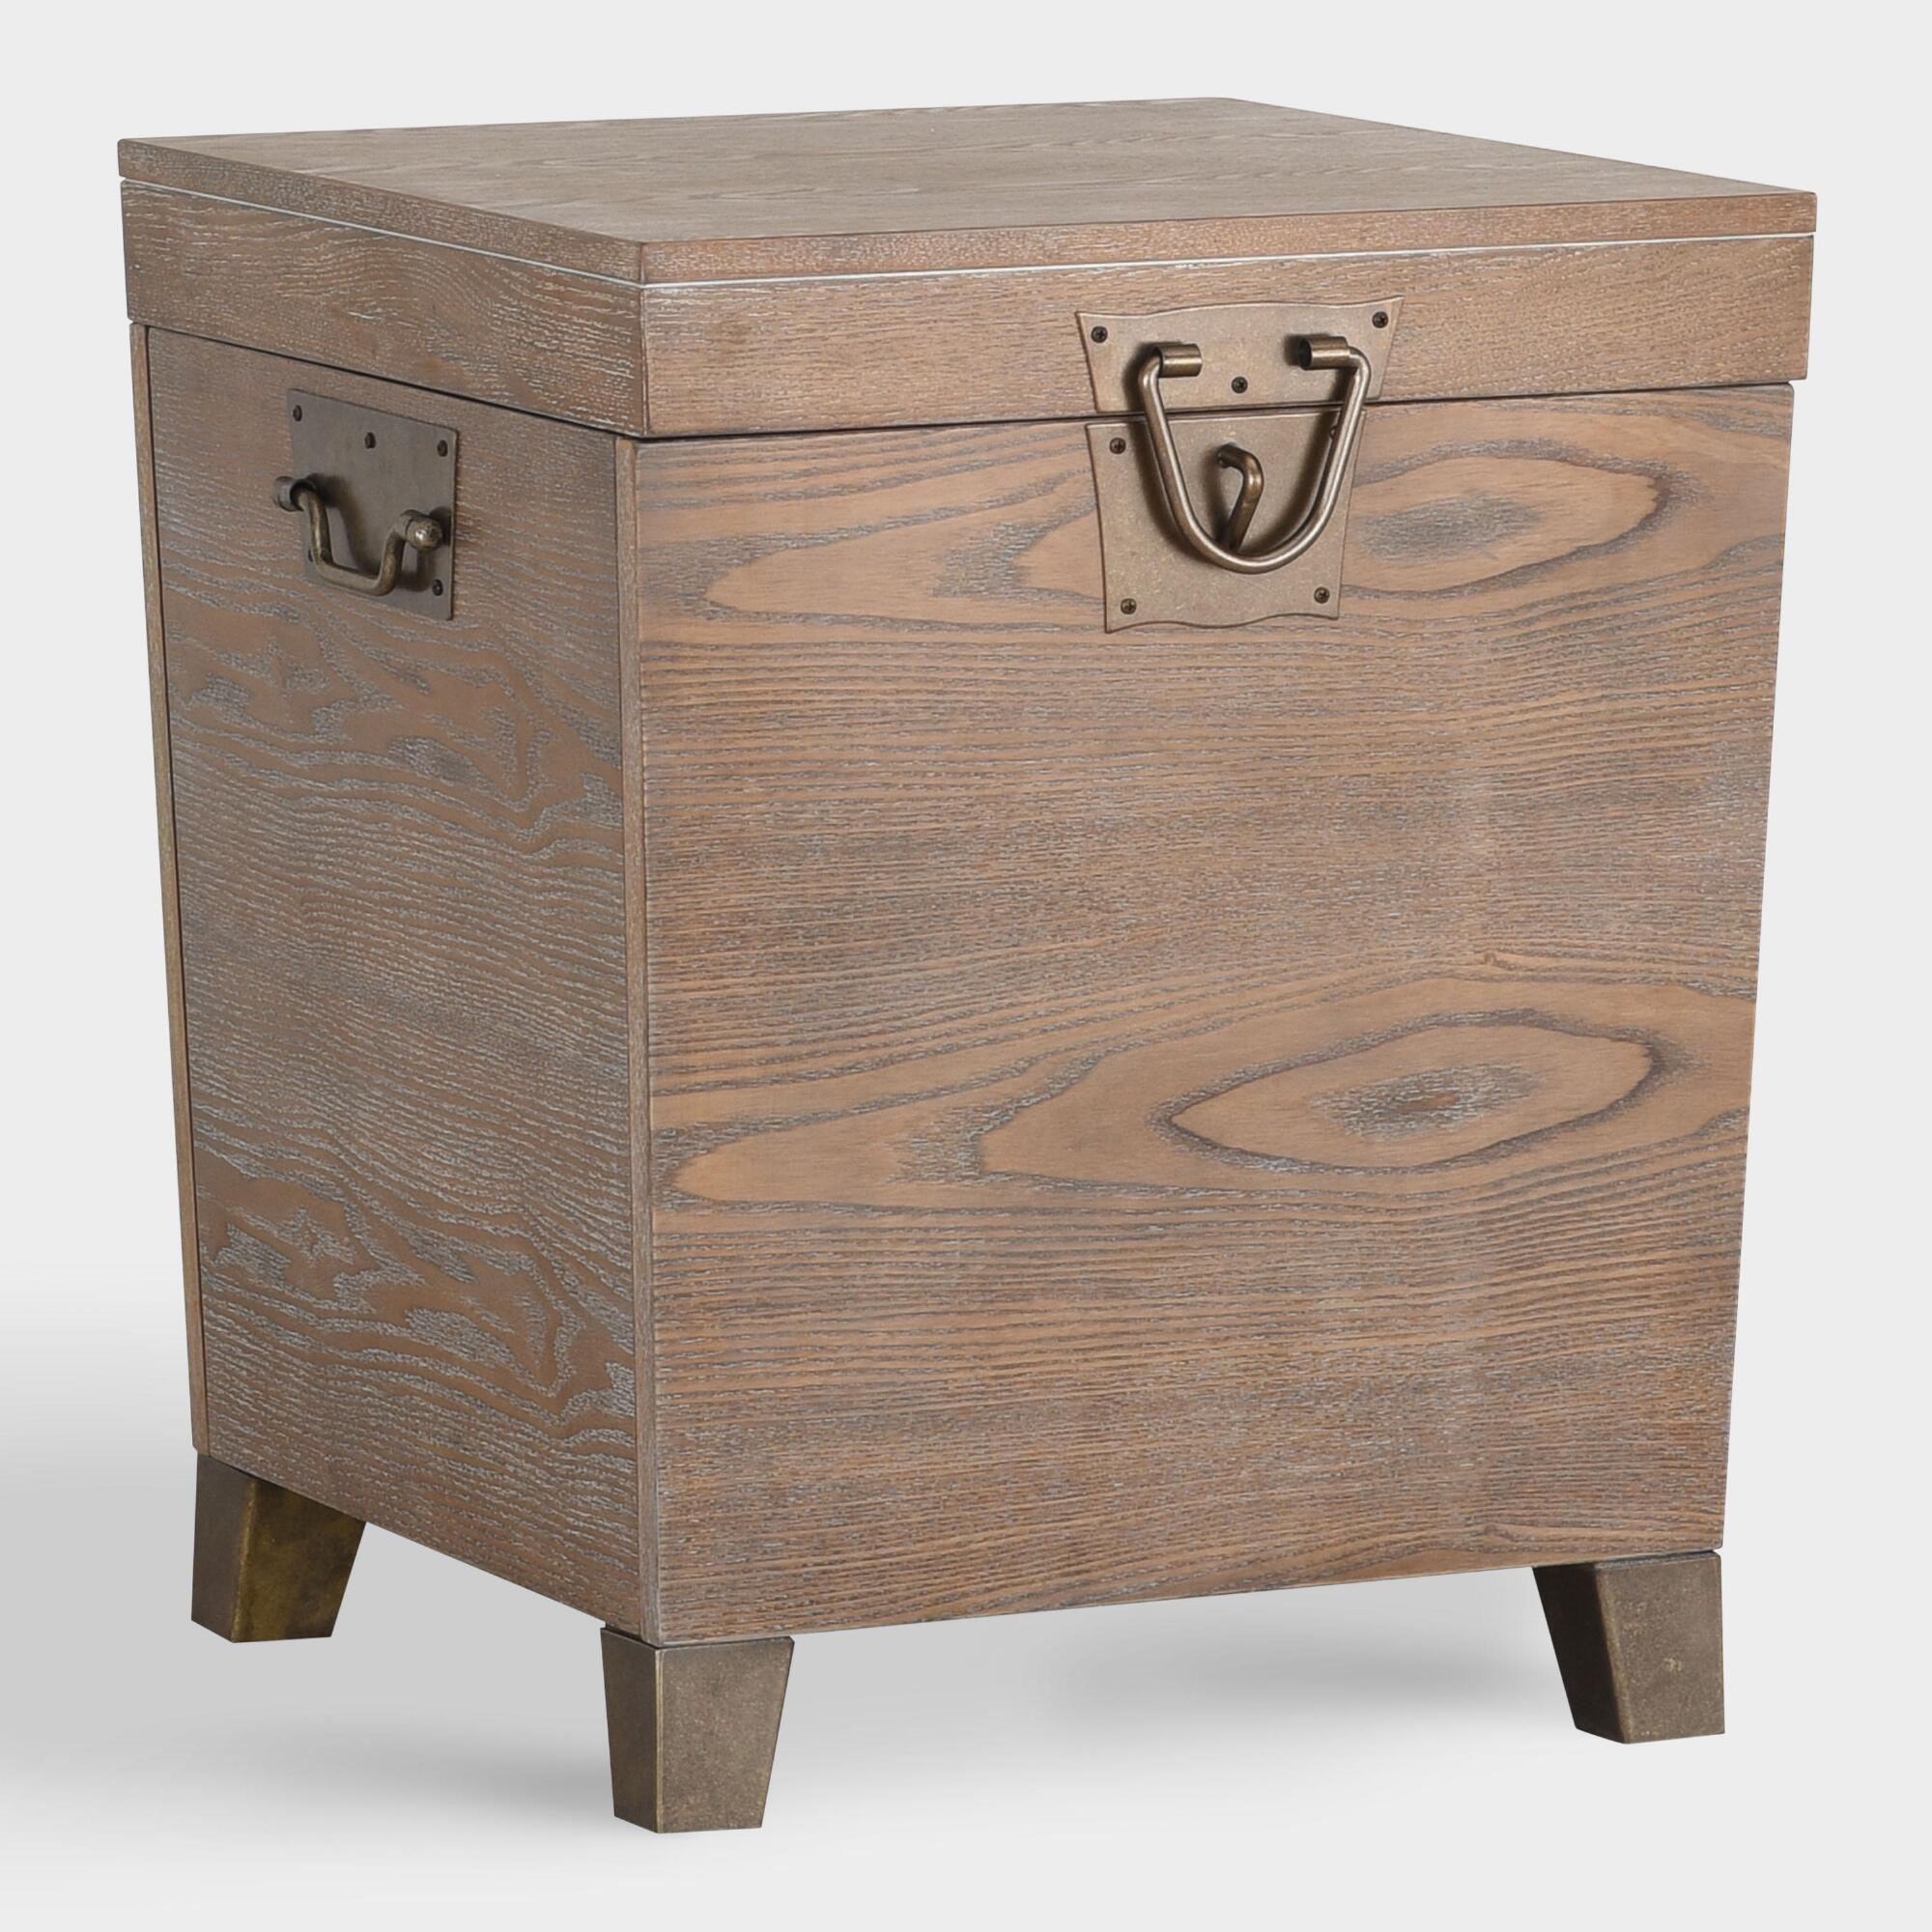 wood storage trunk tyson accent table world market products with reclaimed top ikea dark coffee walnut nest tables white and gold chair mirrored sofa console silver grey lamps